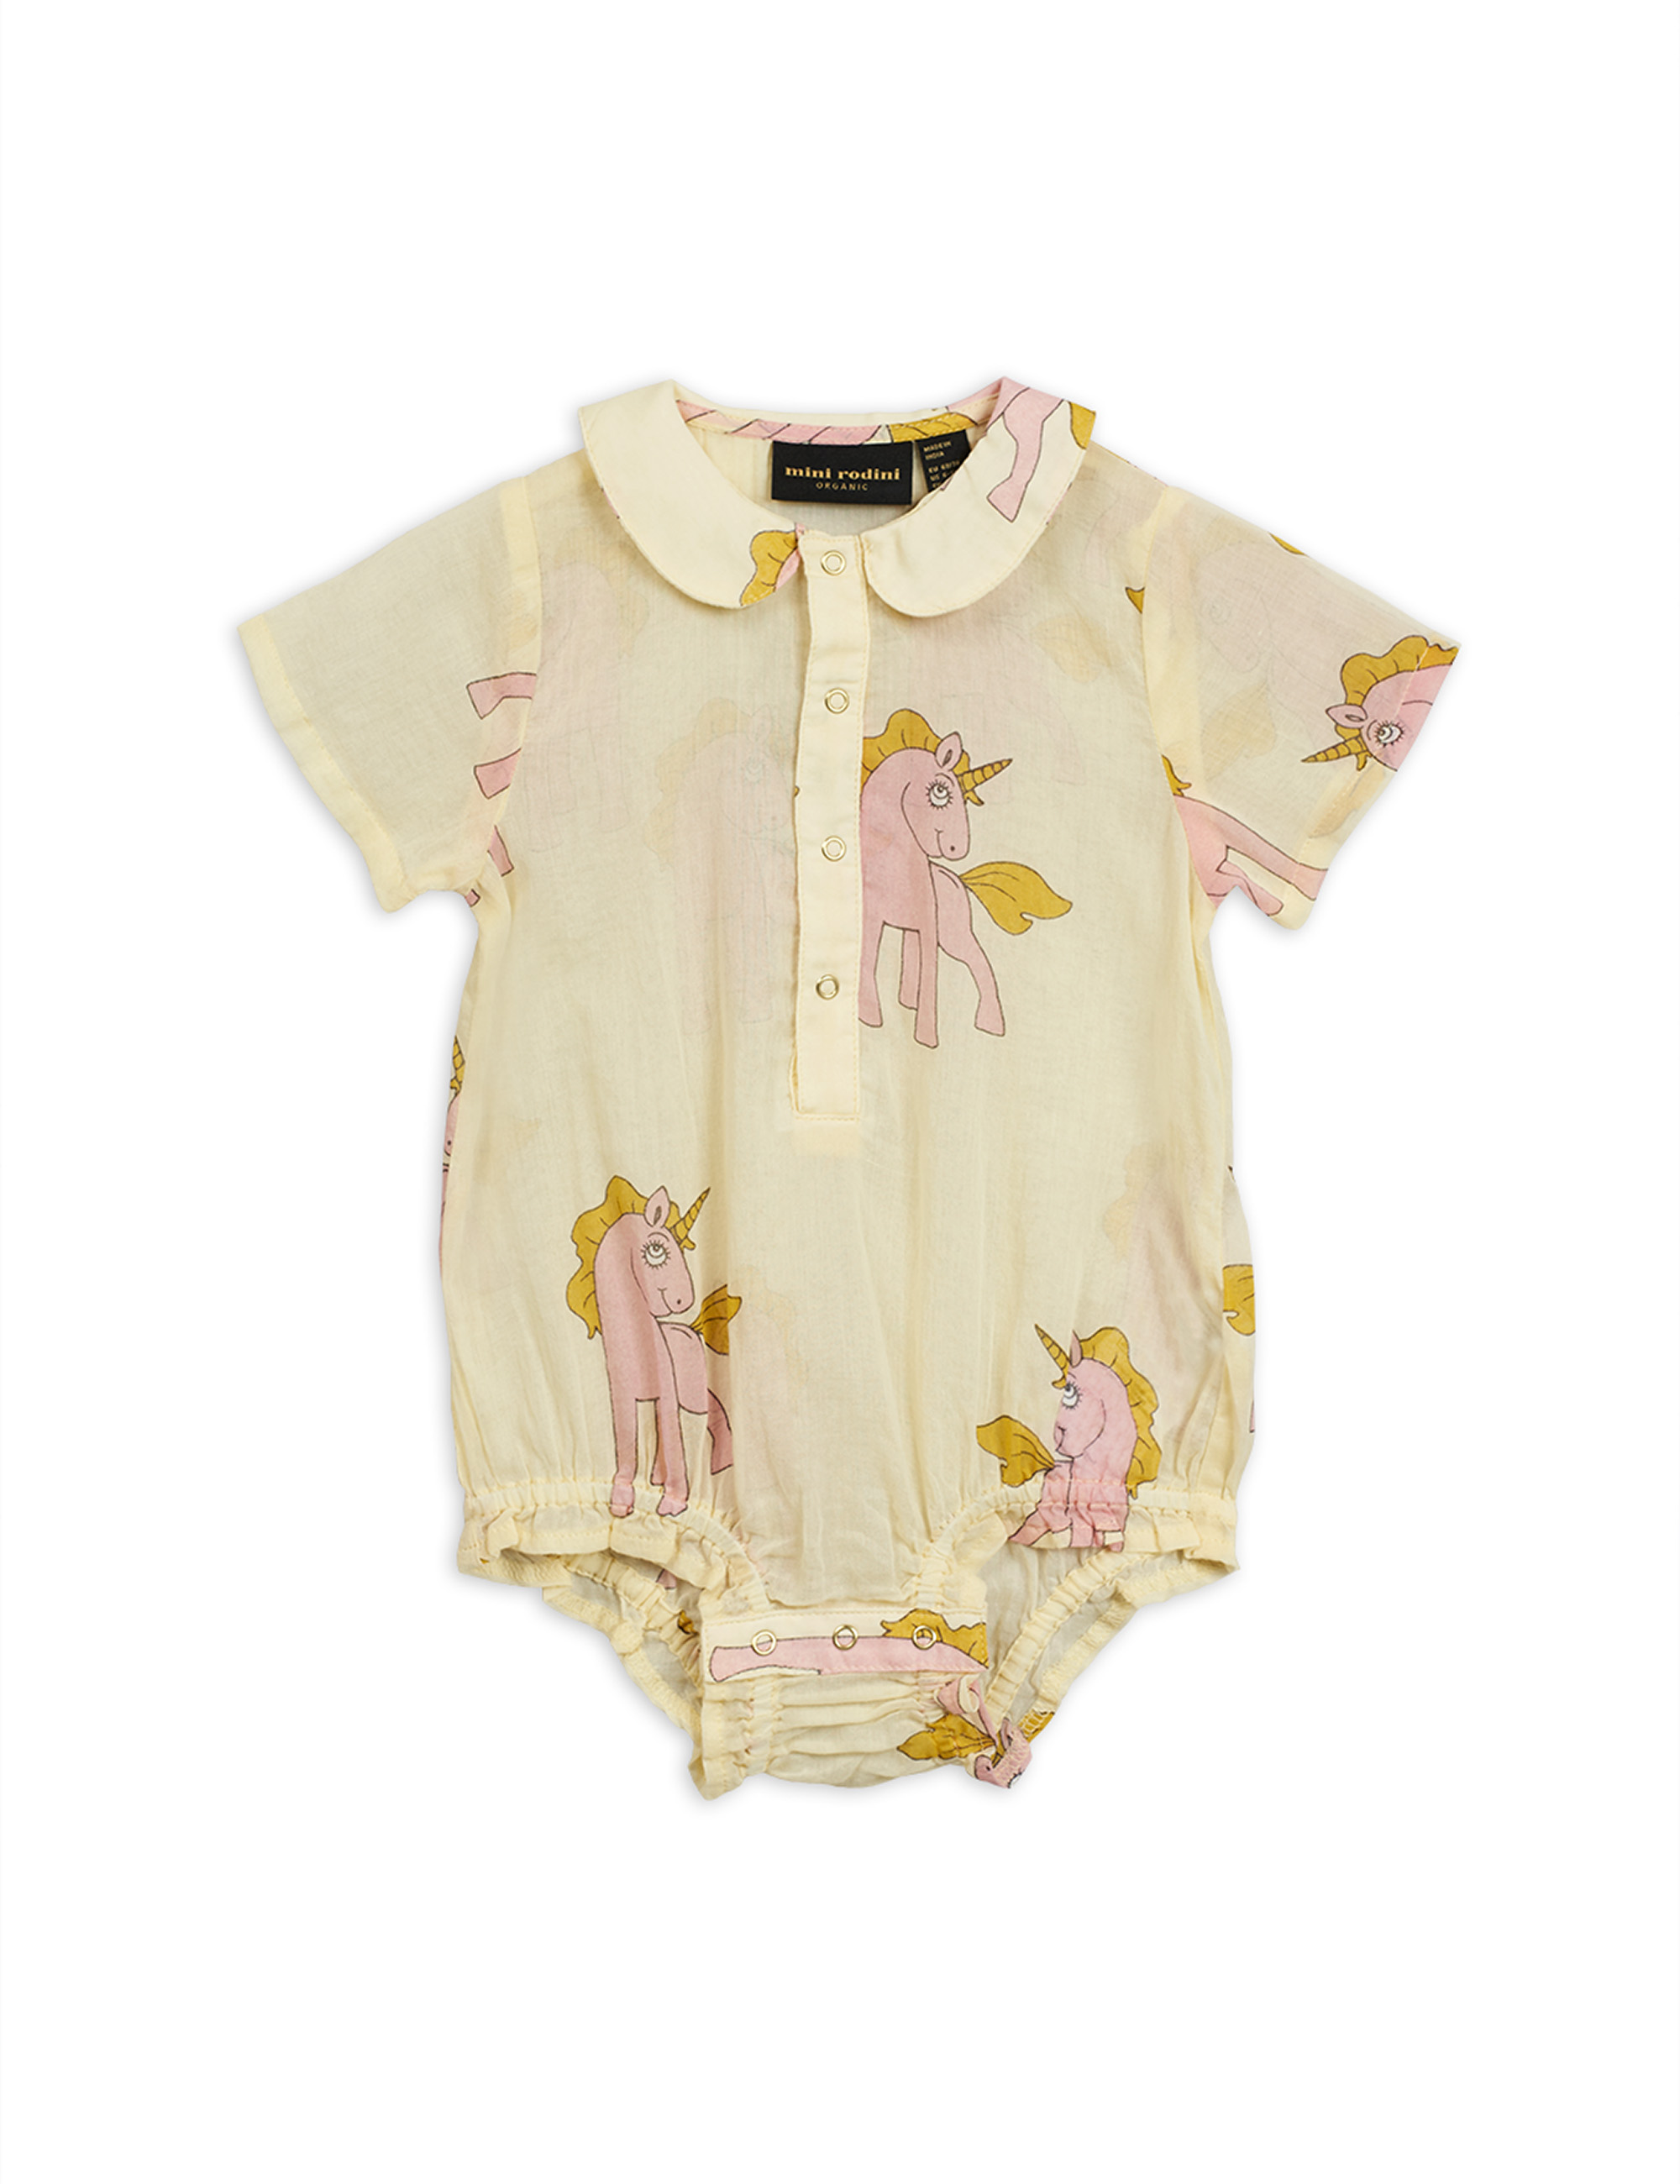 Mini Rodini - Unicorns woven body